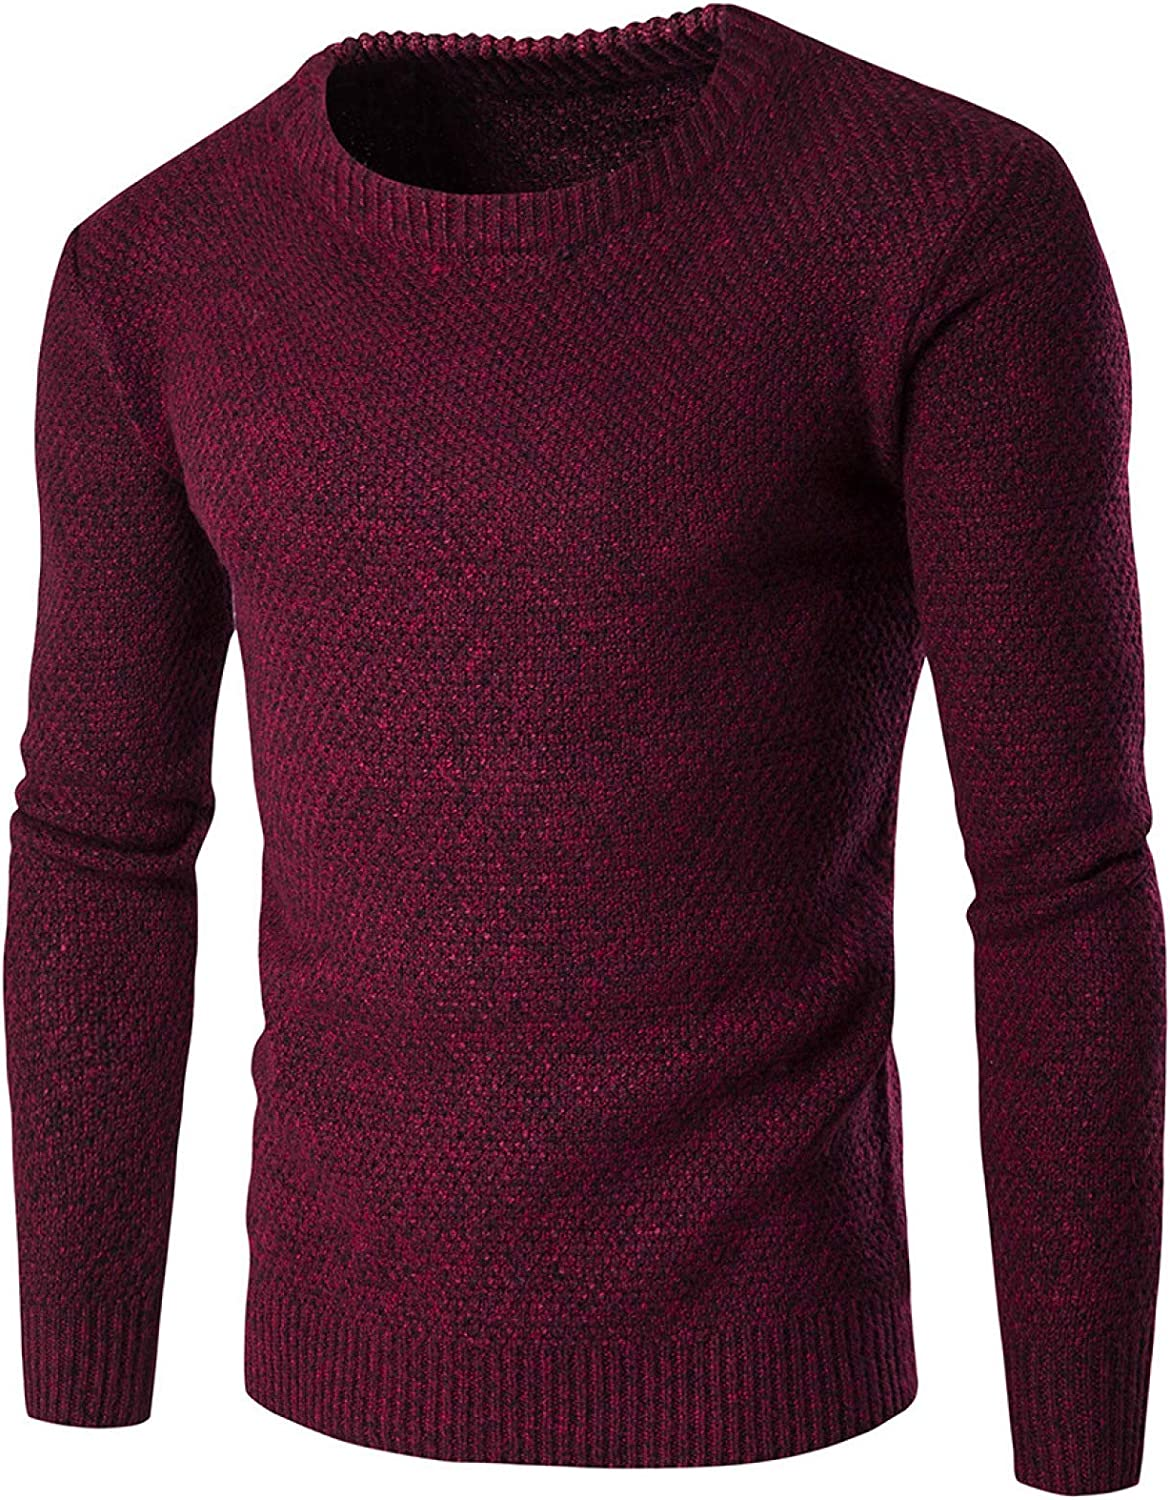 Men's Solid Color Sweater Europe and America Thick Line Thicken Warmth Casual